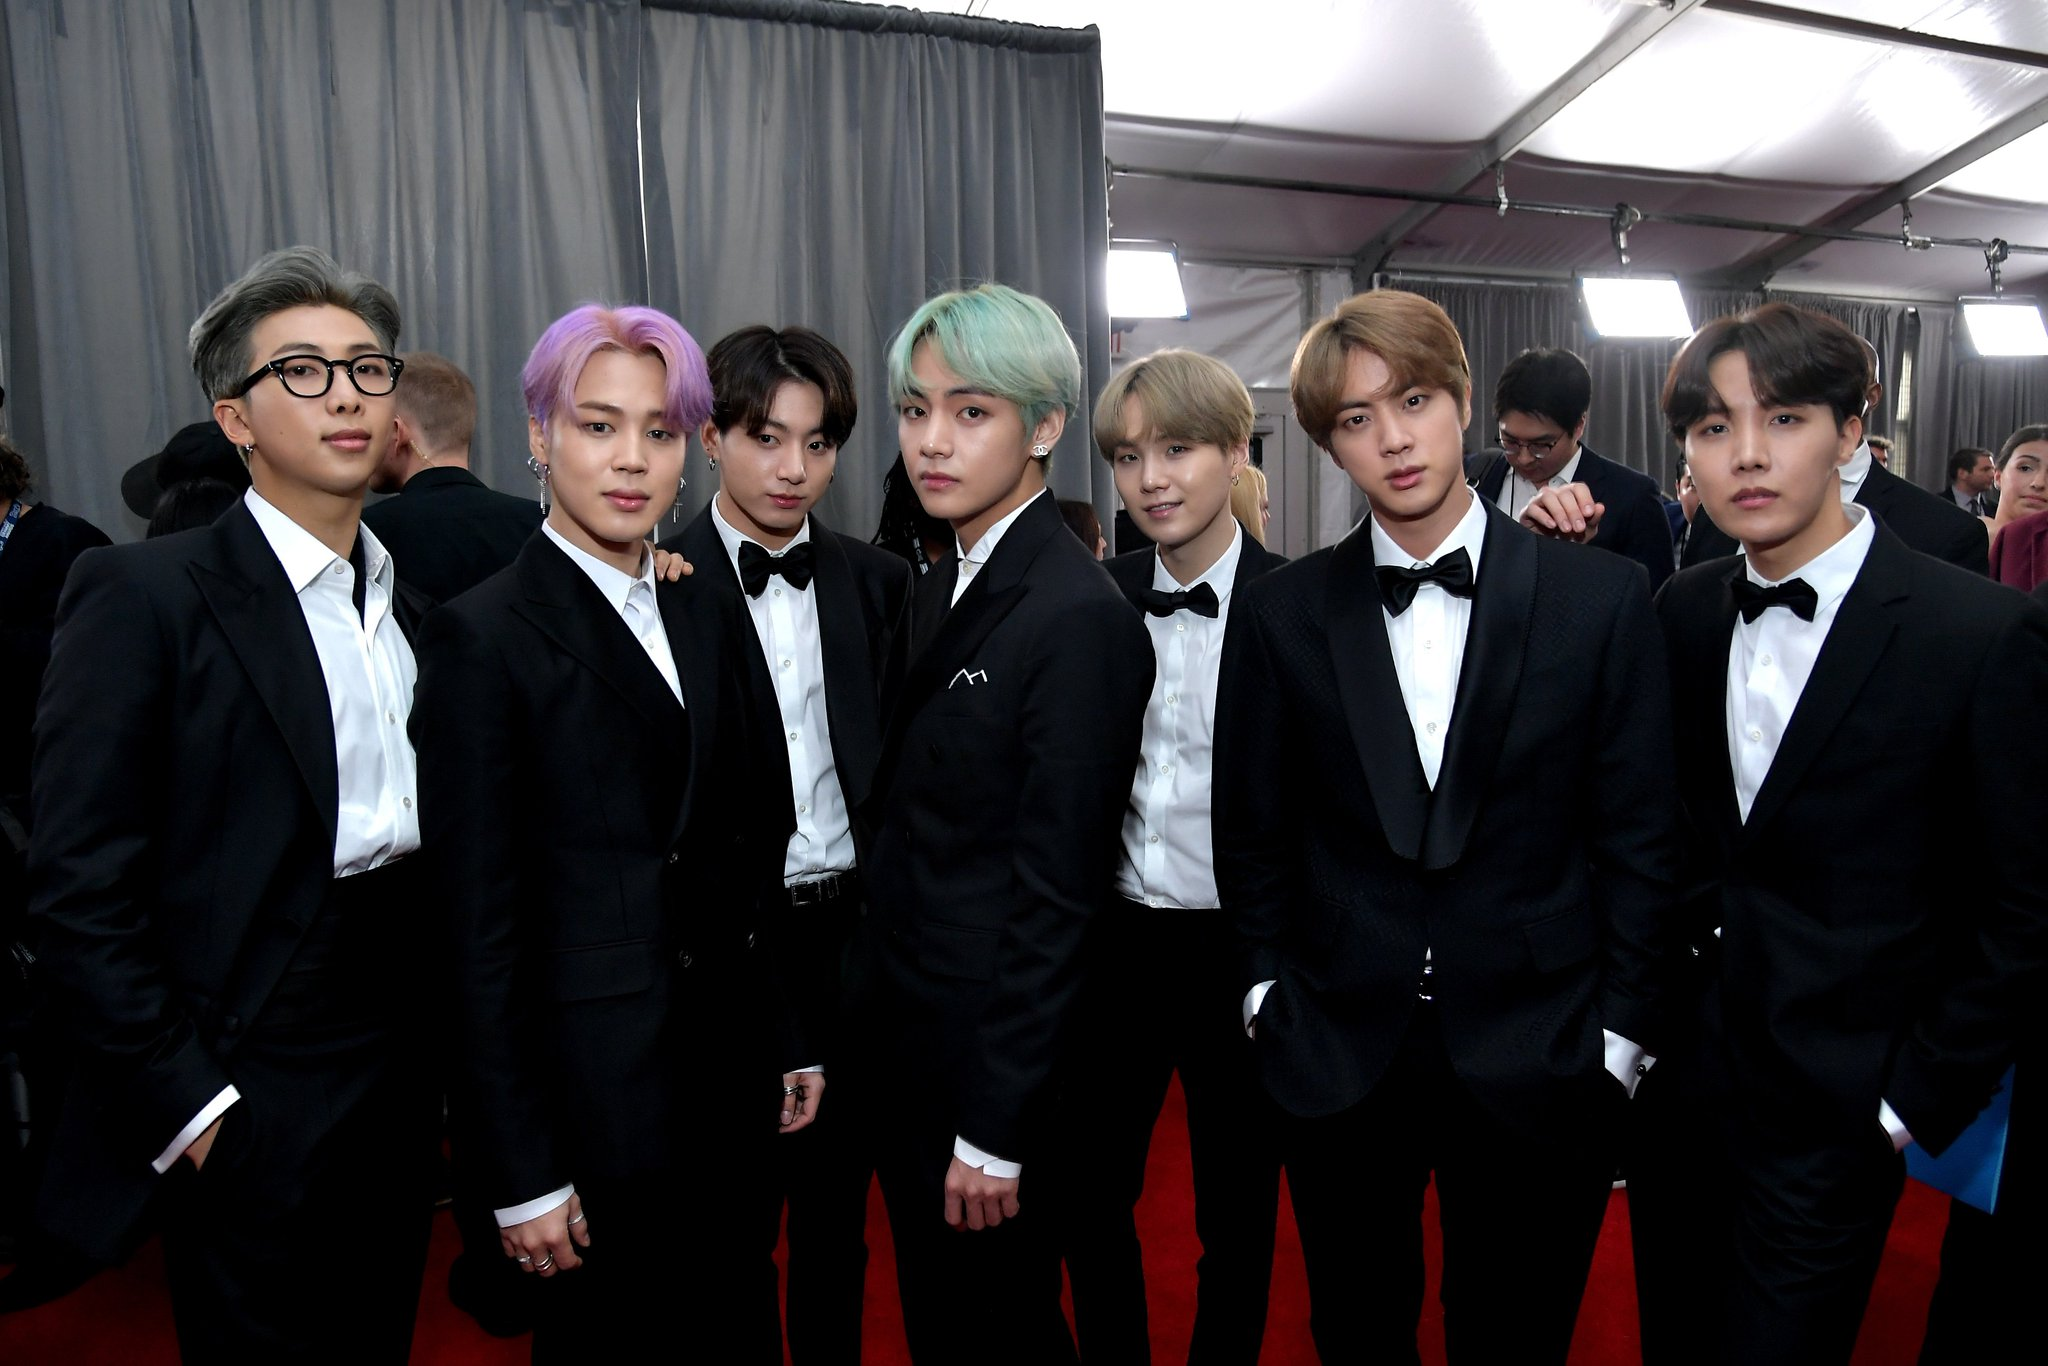 ✨ Welcome to the 2019 #GRAMMYs, @BTS_twt ✨ https://t.co/KyC67gYAYp